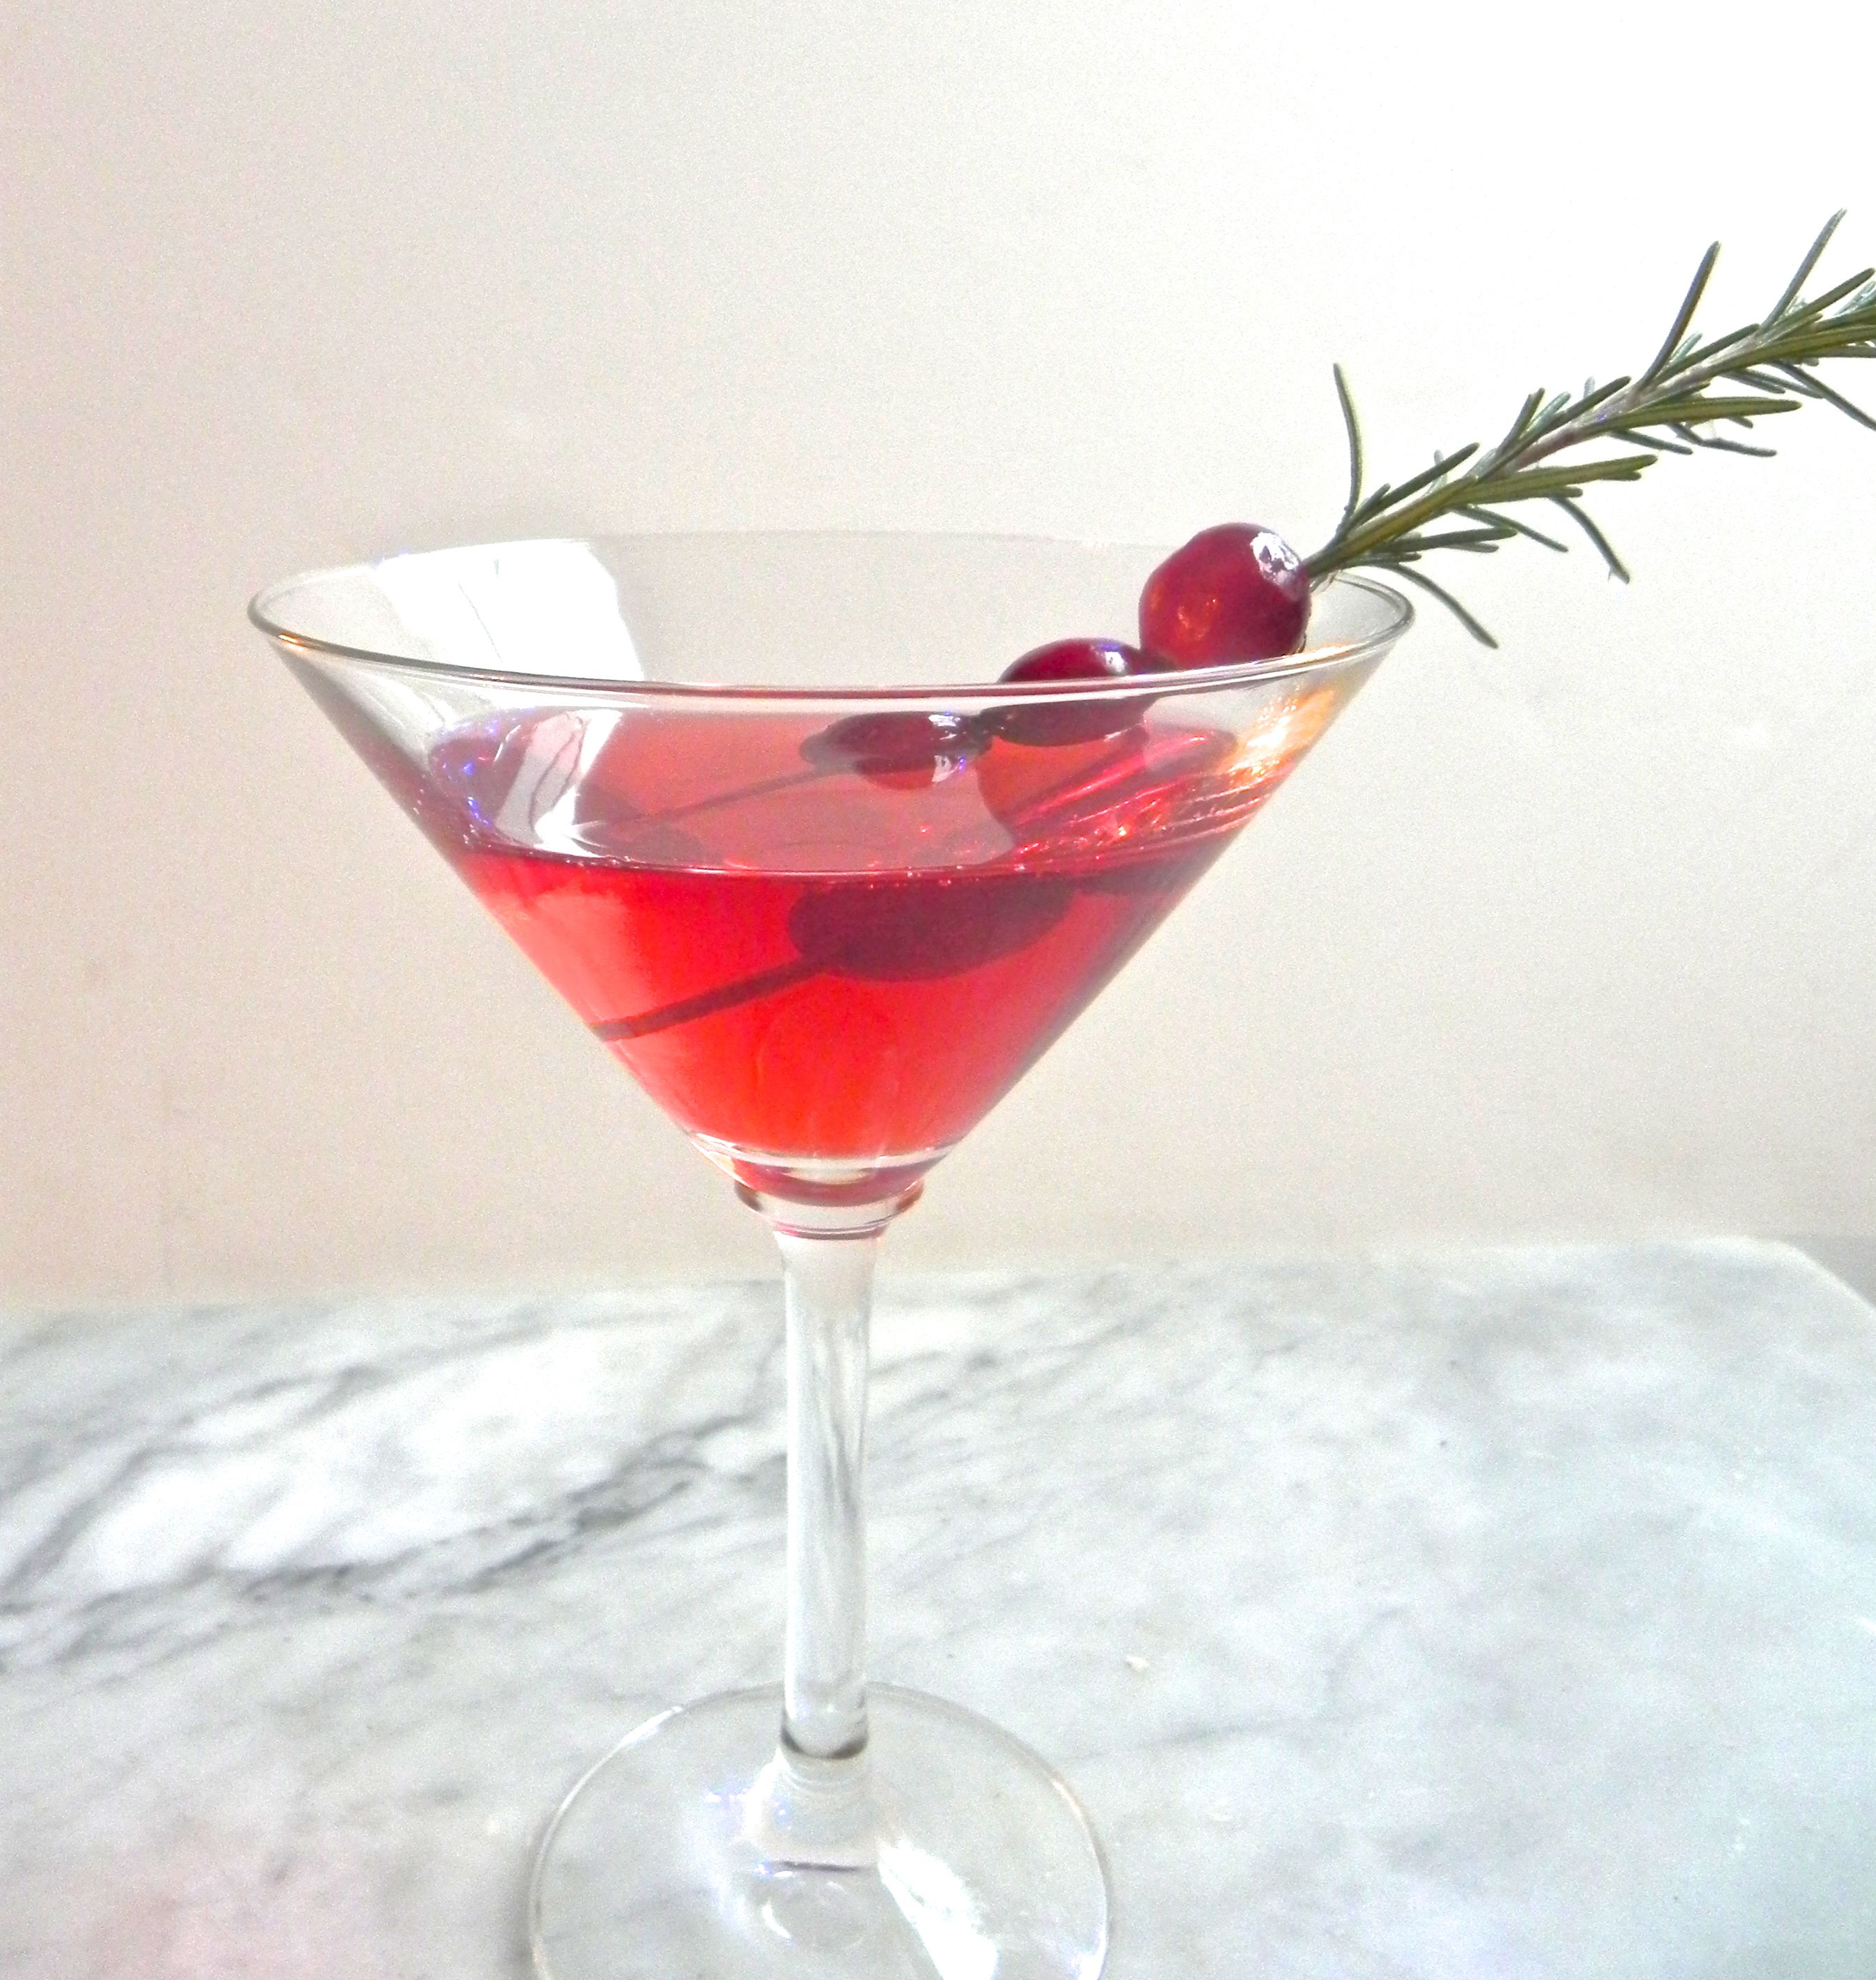 cocktail of spiced cranberry vodka with a splash of ginger ale